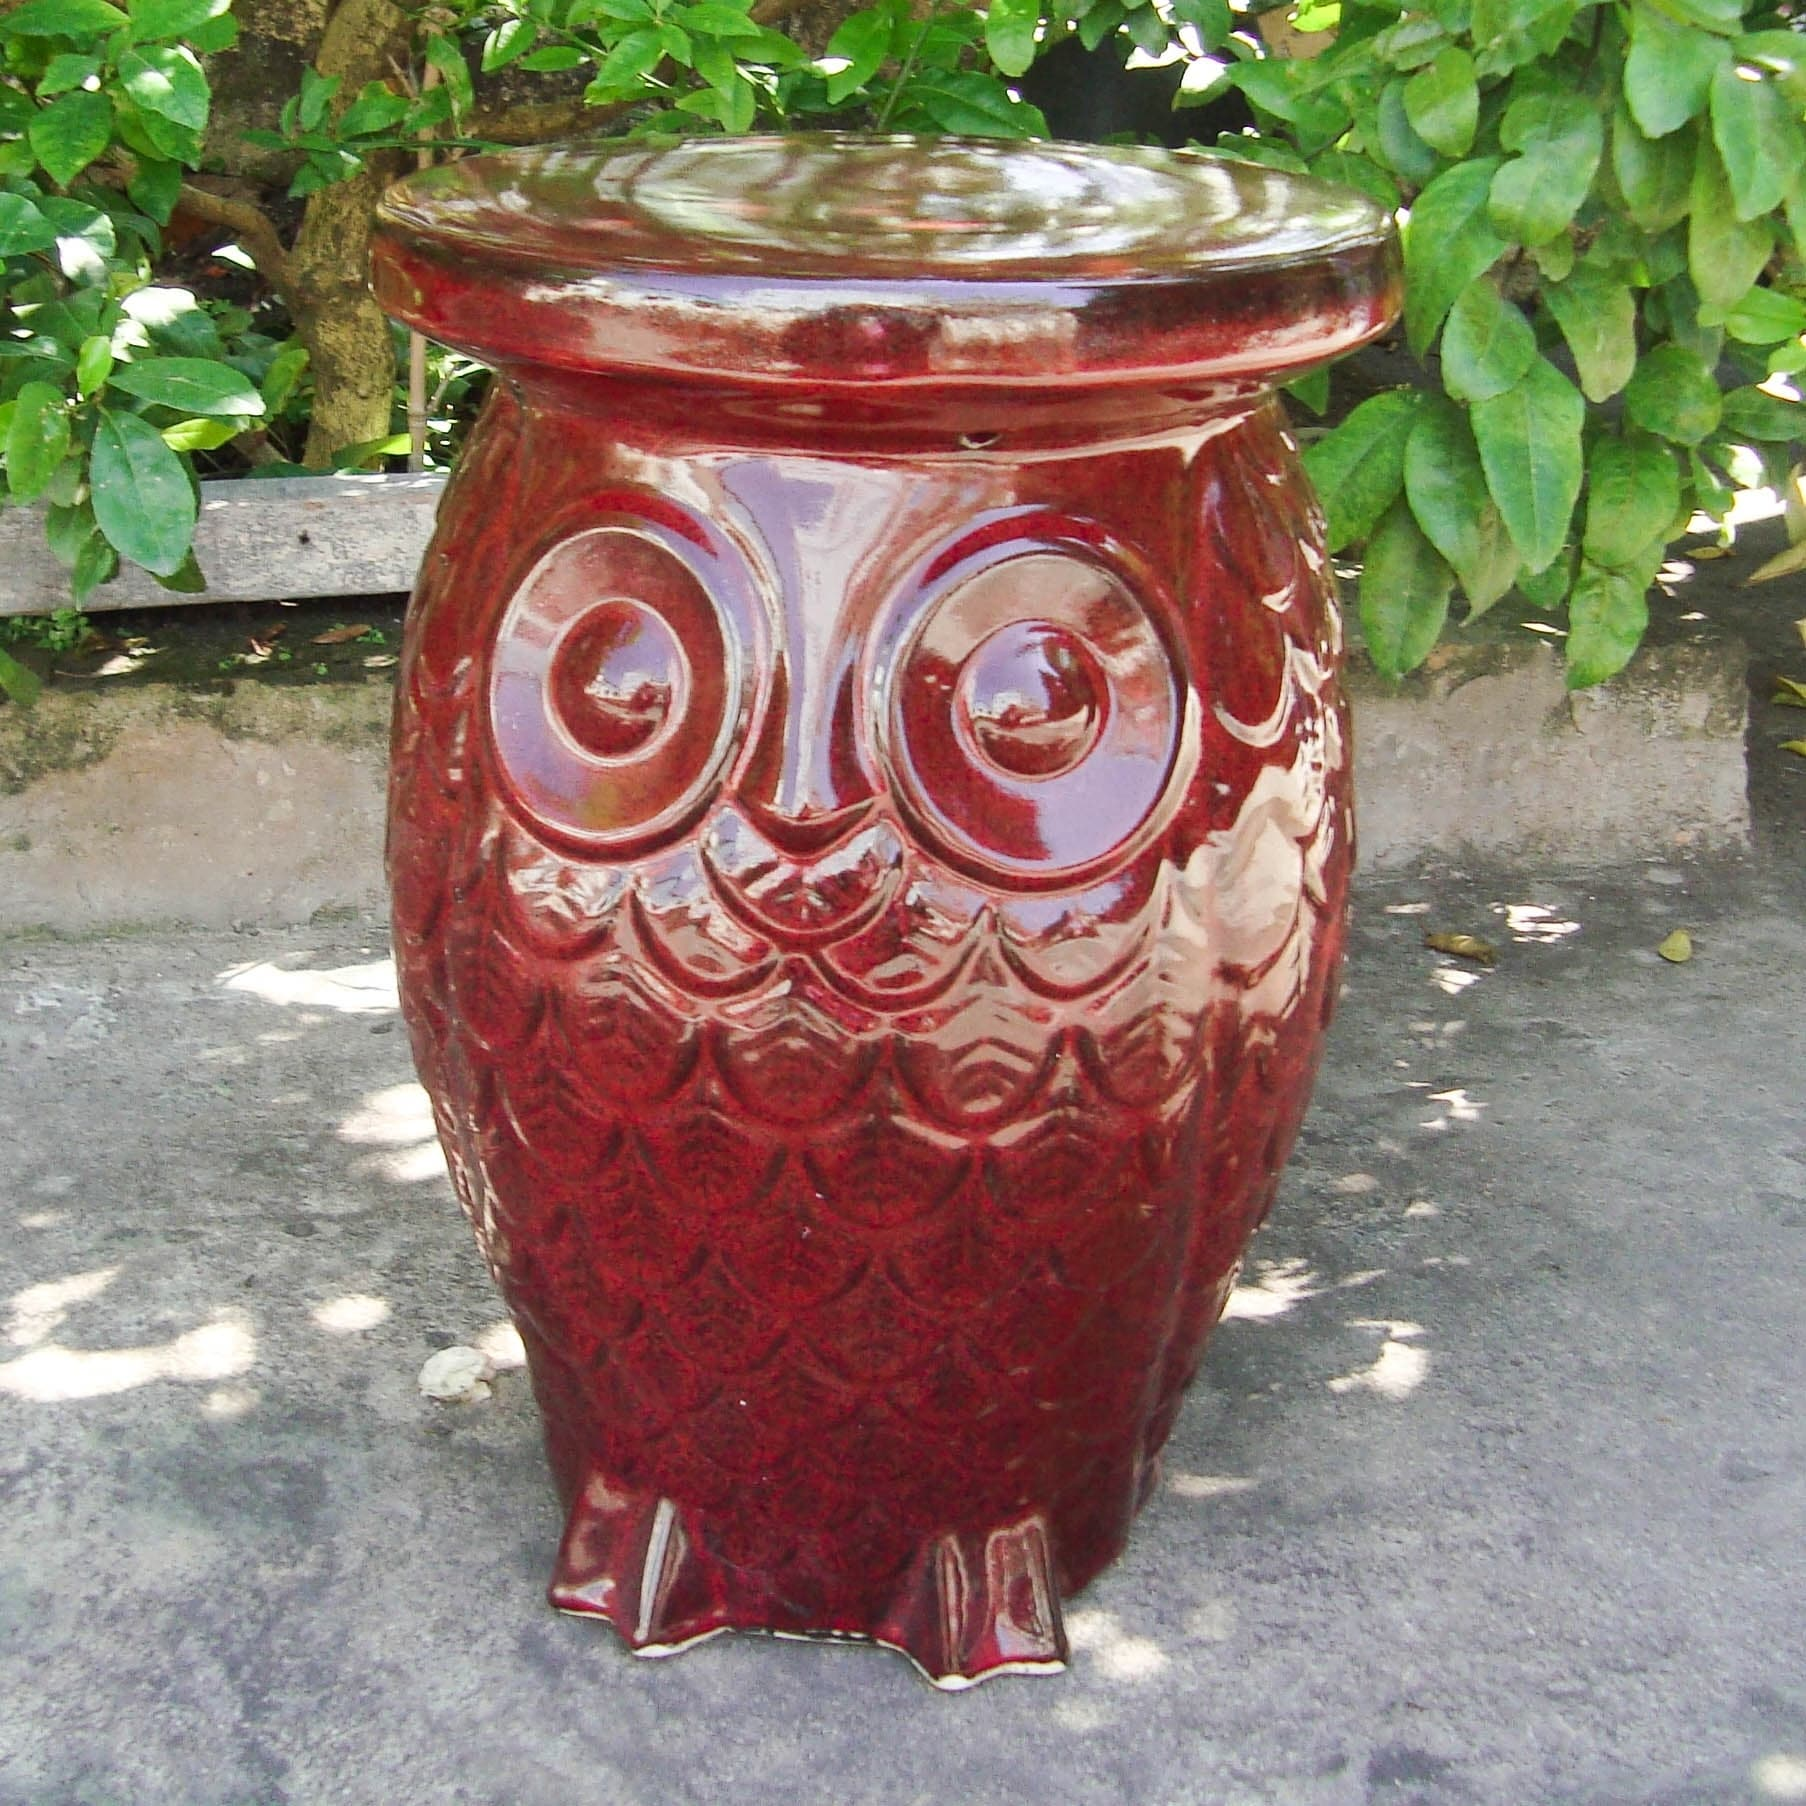 shipping free garden brown product stool com overstock today home wooden natural owl and